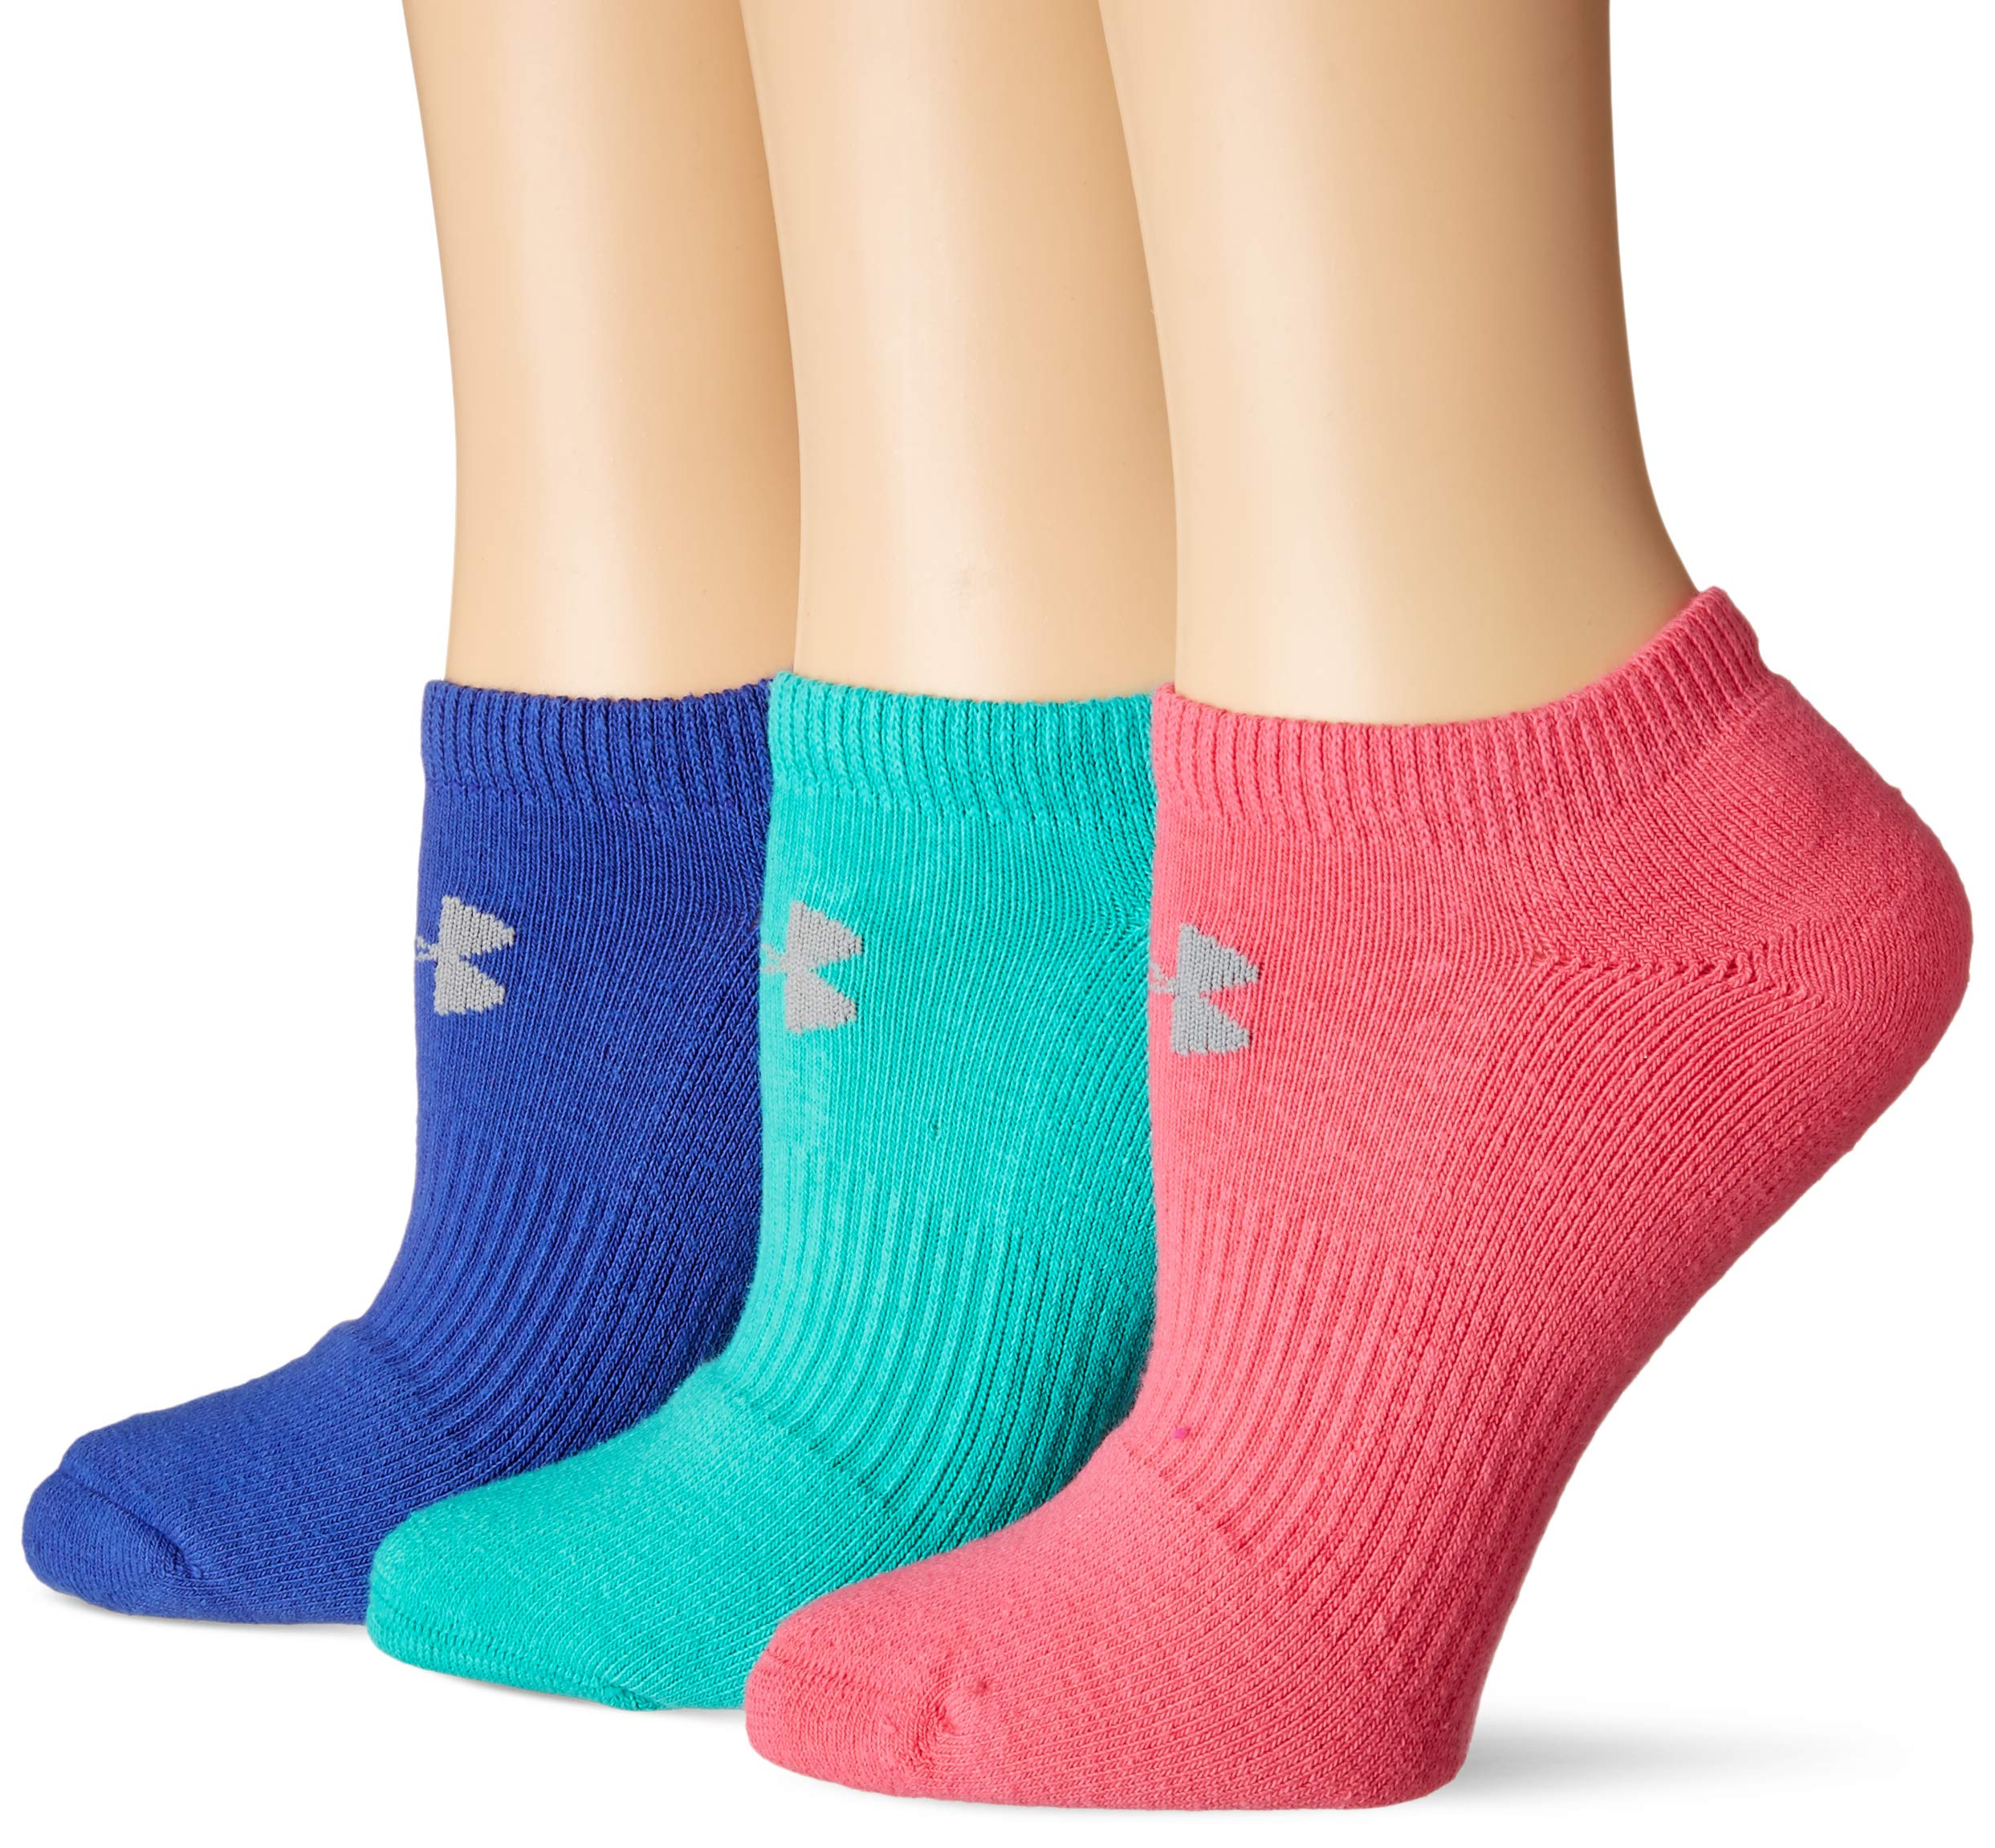 Under Armour Charged Cotton 2.0 No Show Socks, 6 Pairs, Color Assorted, Medium by Under Armour